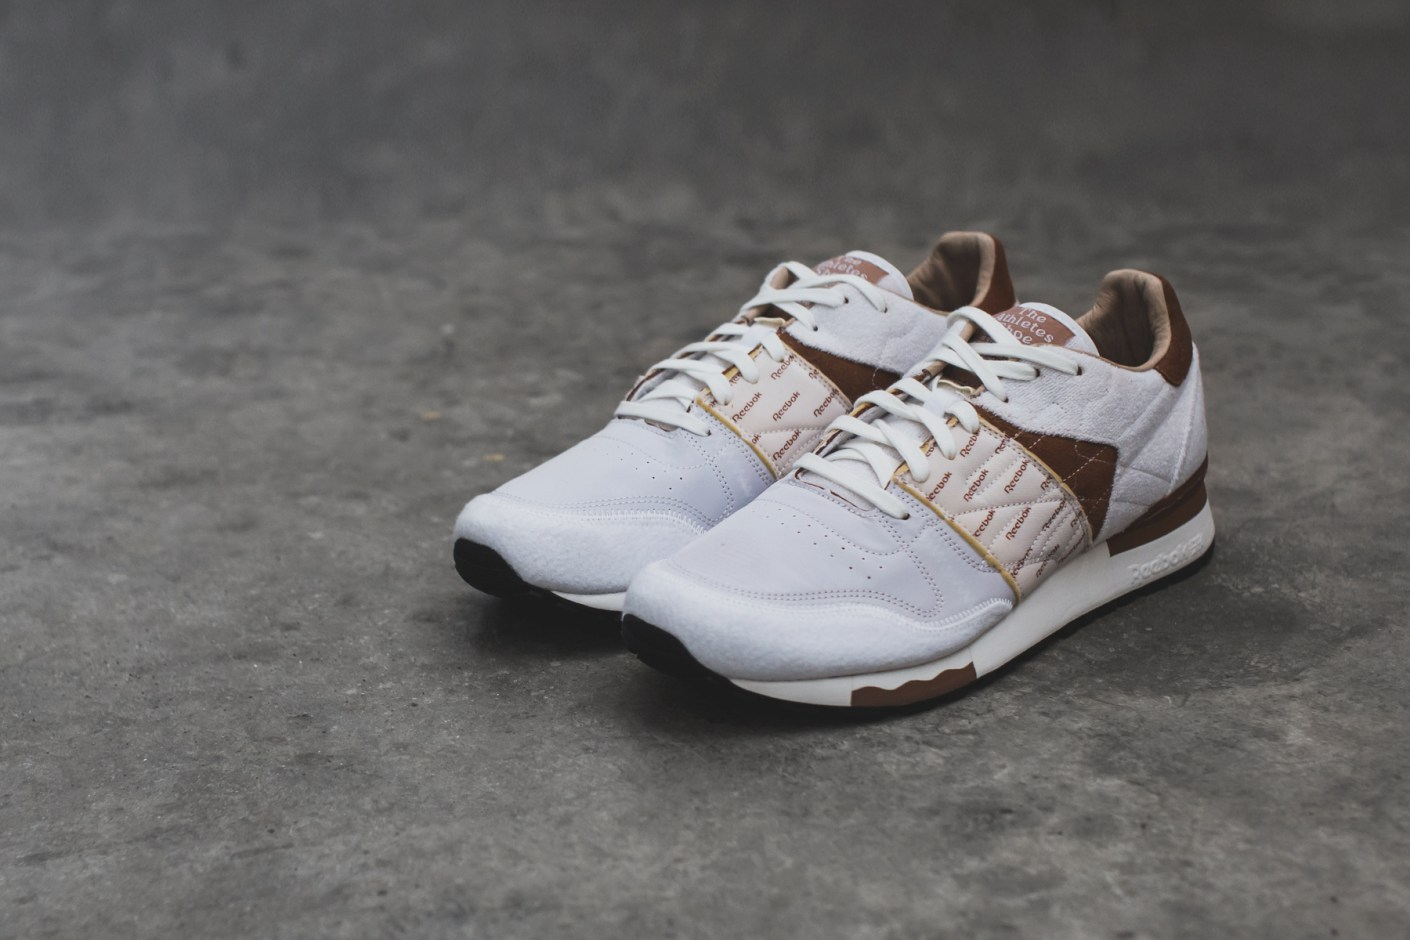 Image of Garbstore x Reebok CL Leather 6000